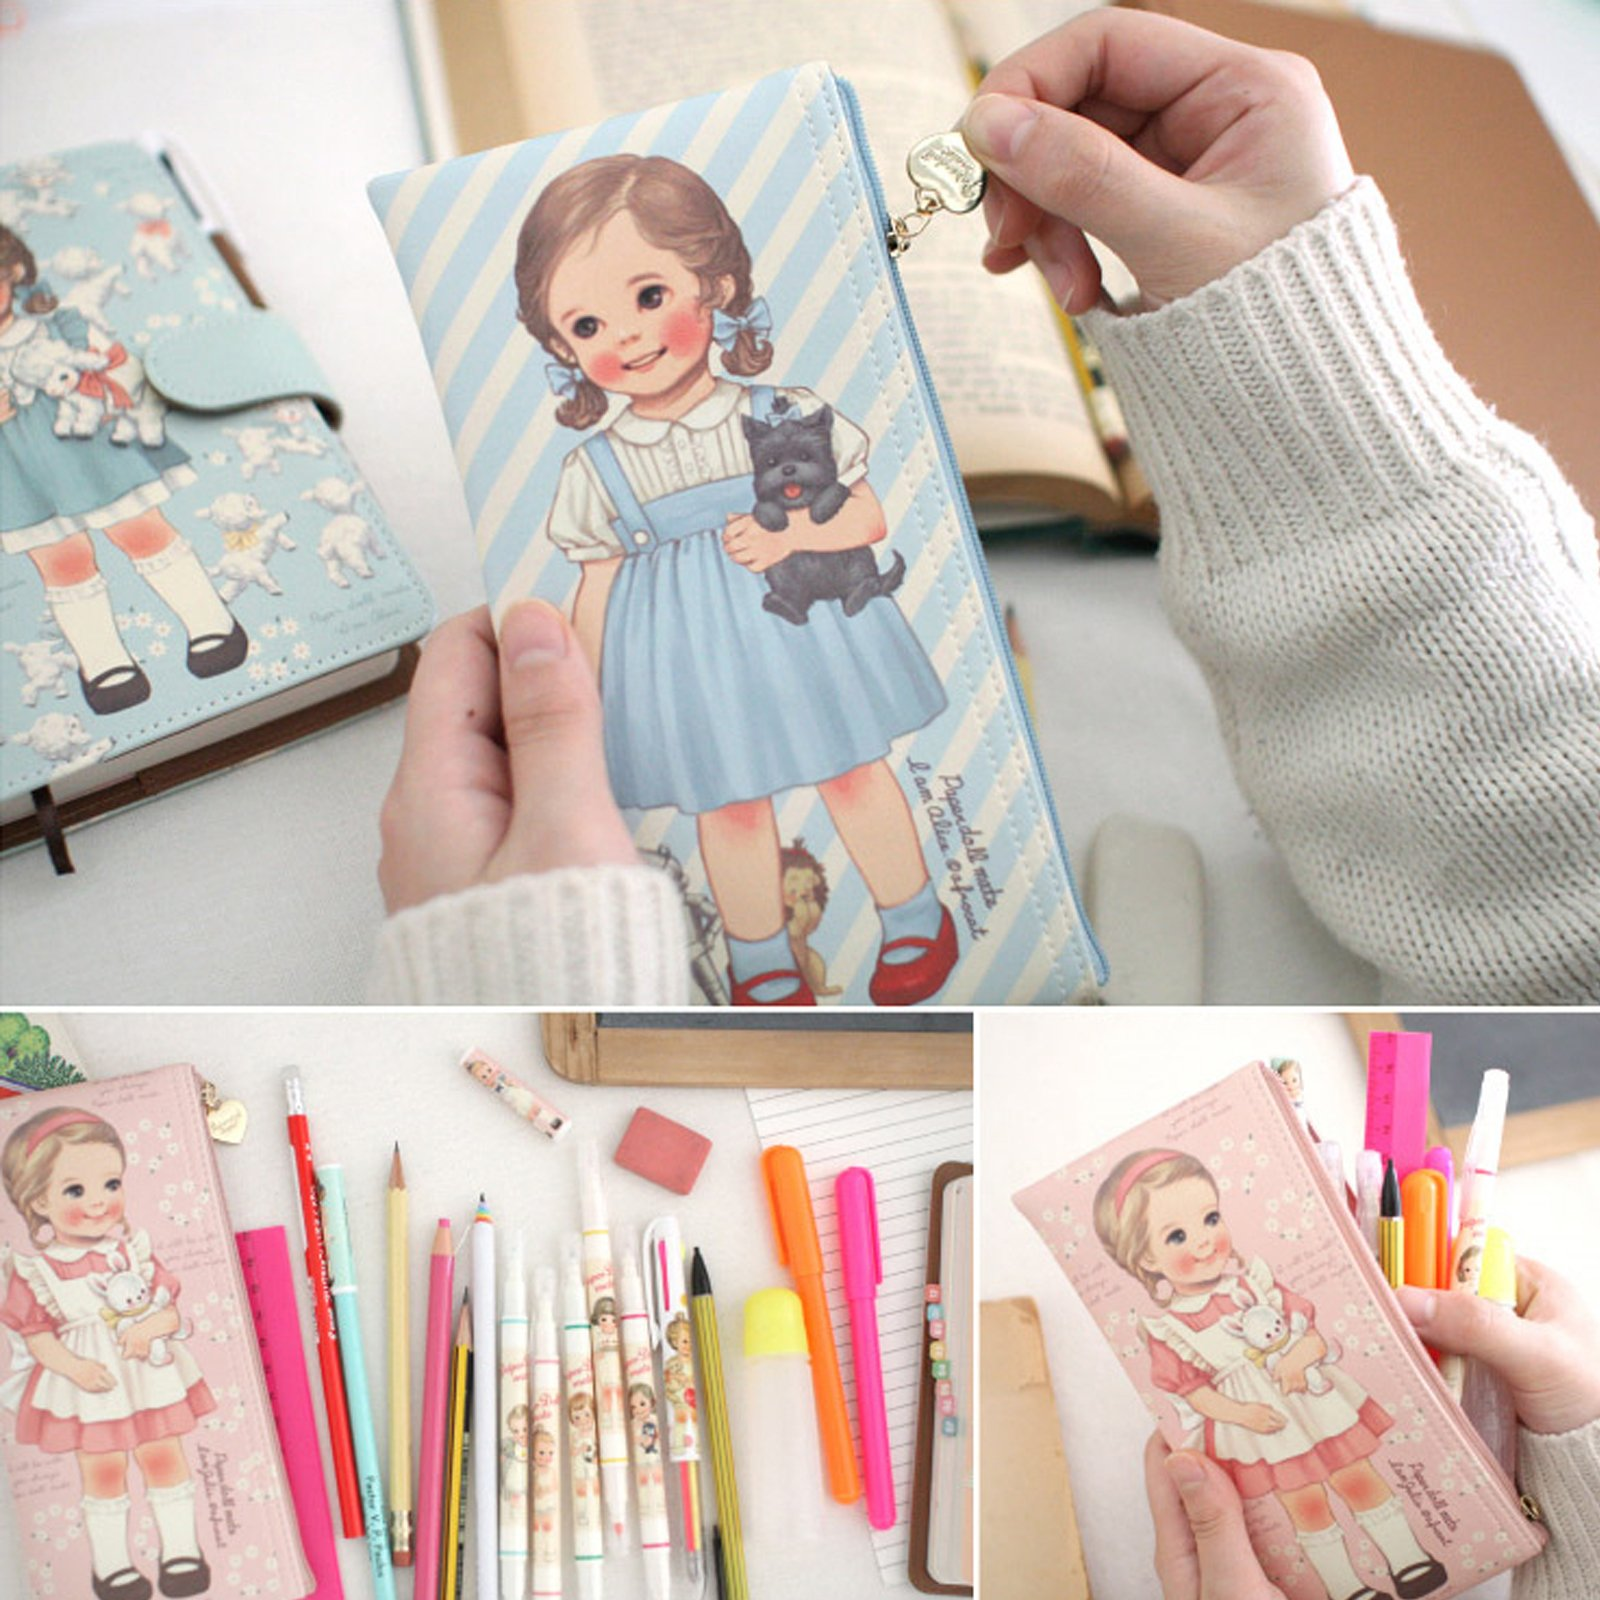 paperdollmate pencase ver011_toy Julie by paper doll mate (Image #8)